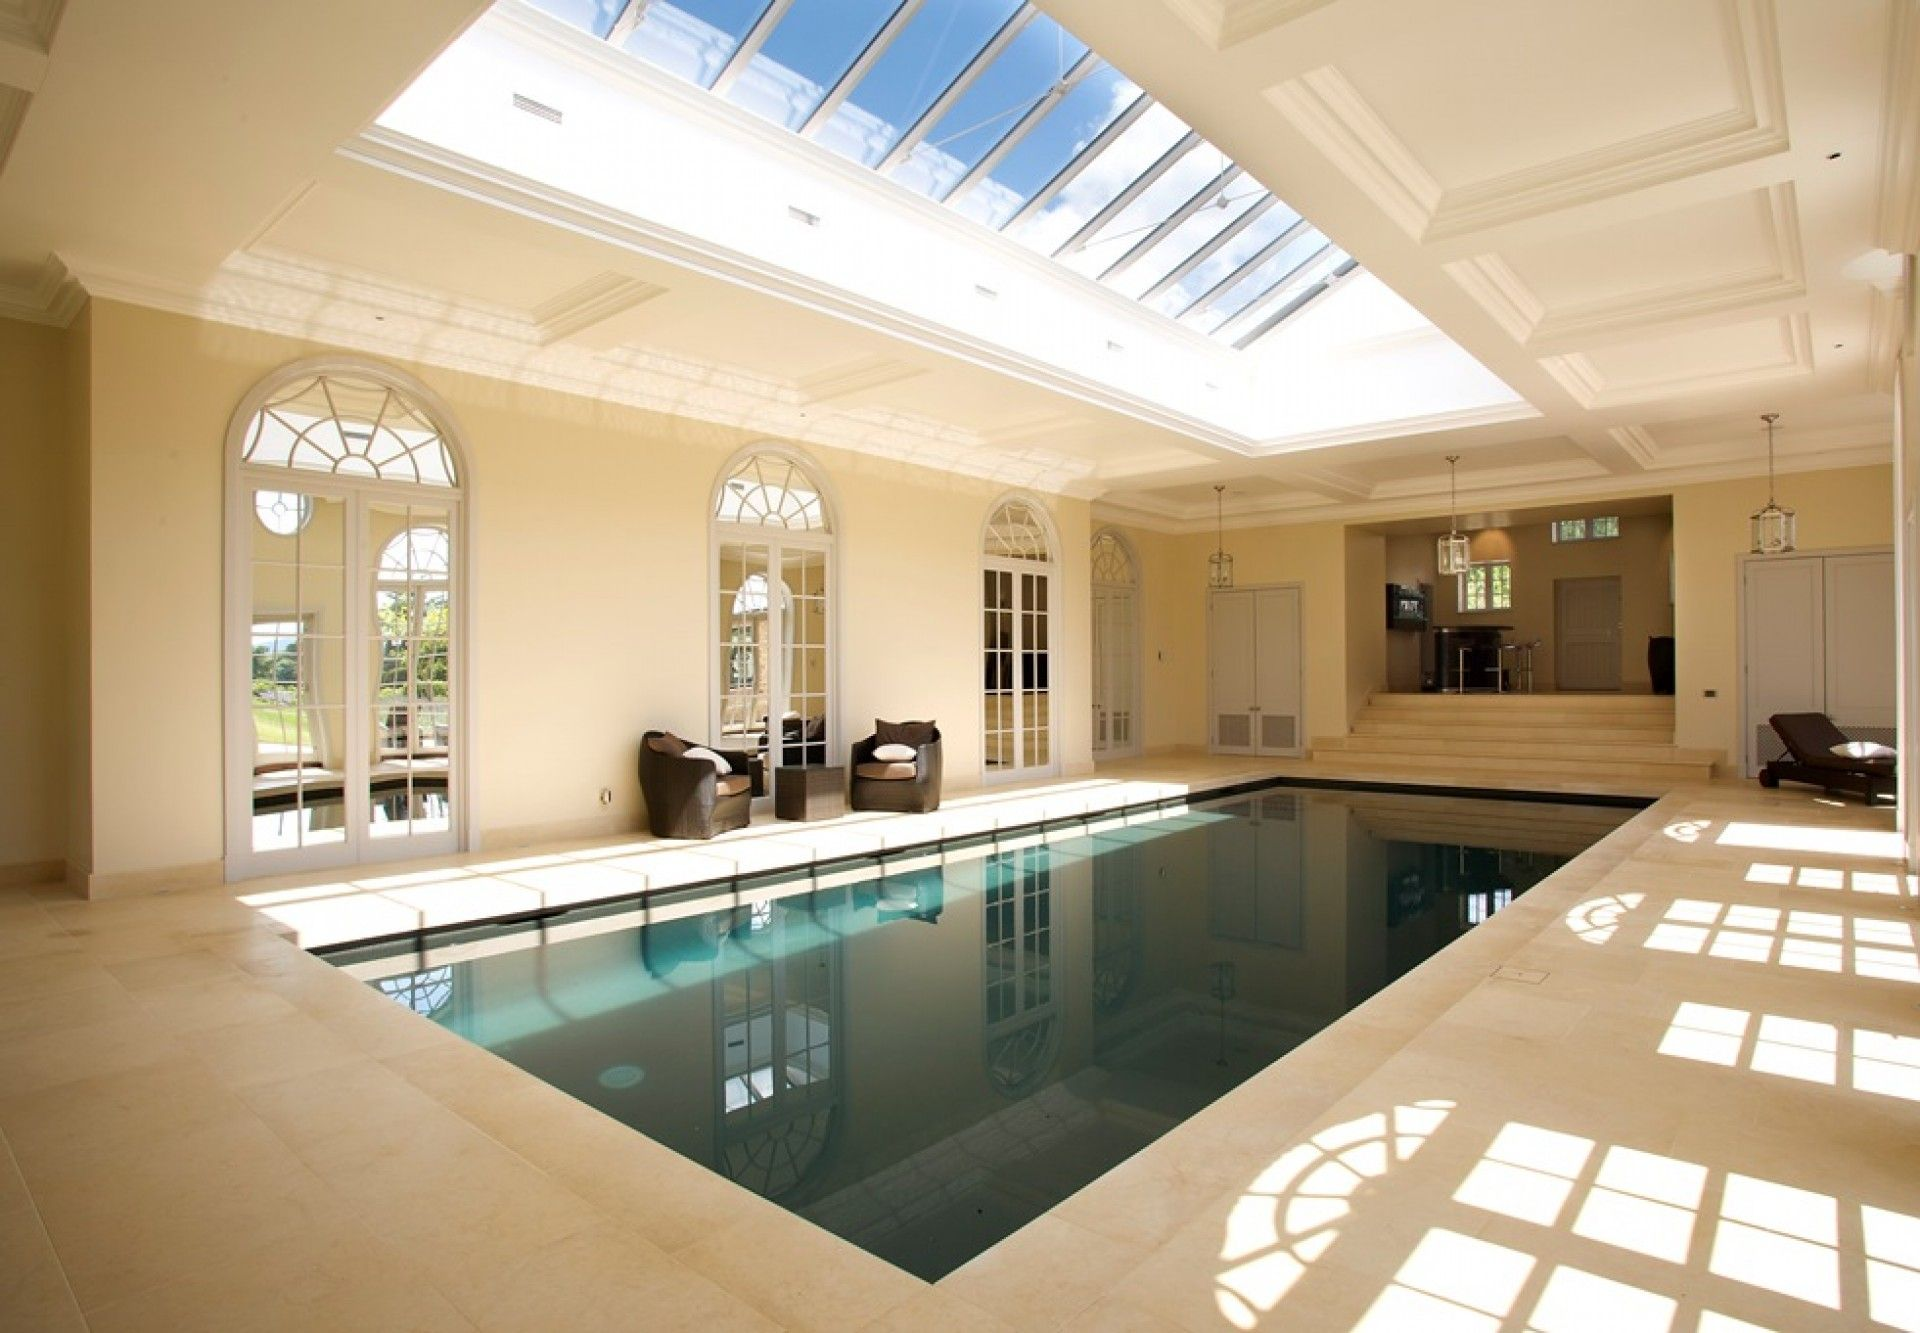 Private Indoor Swimming Pools admirable indoor house swimming pool idea showing lap pool and